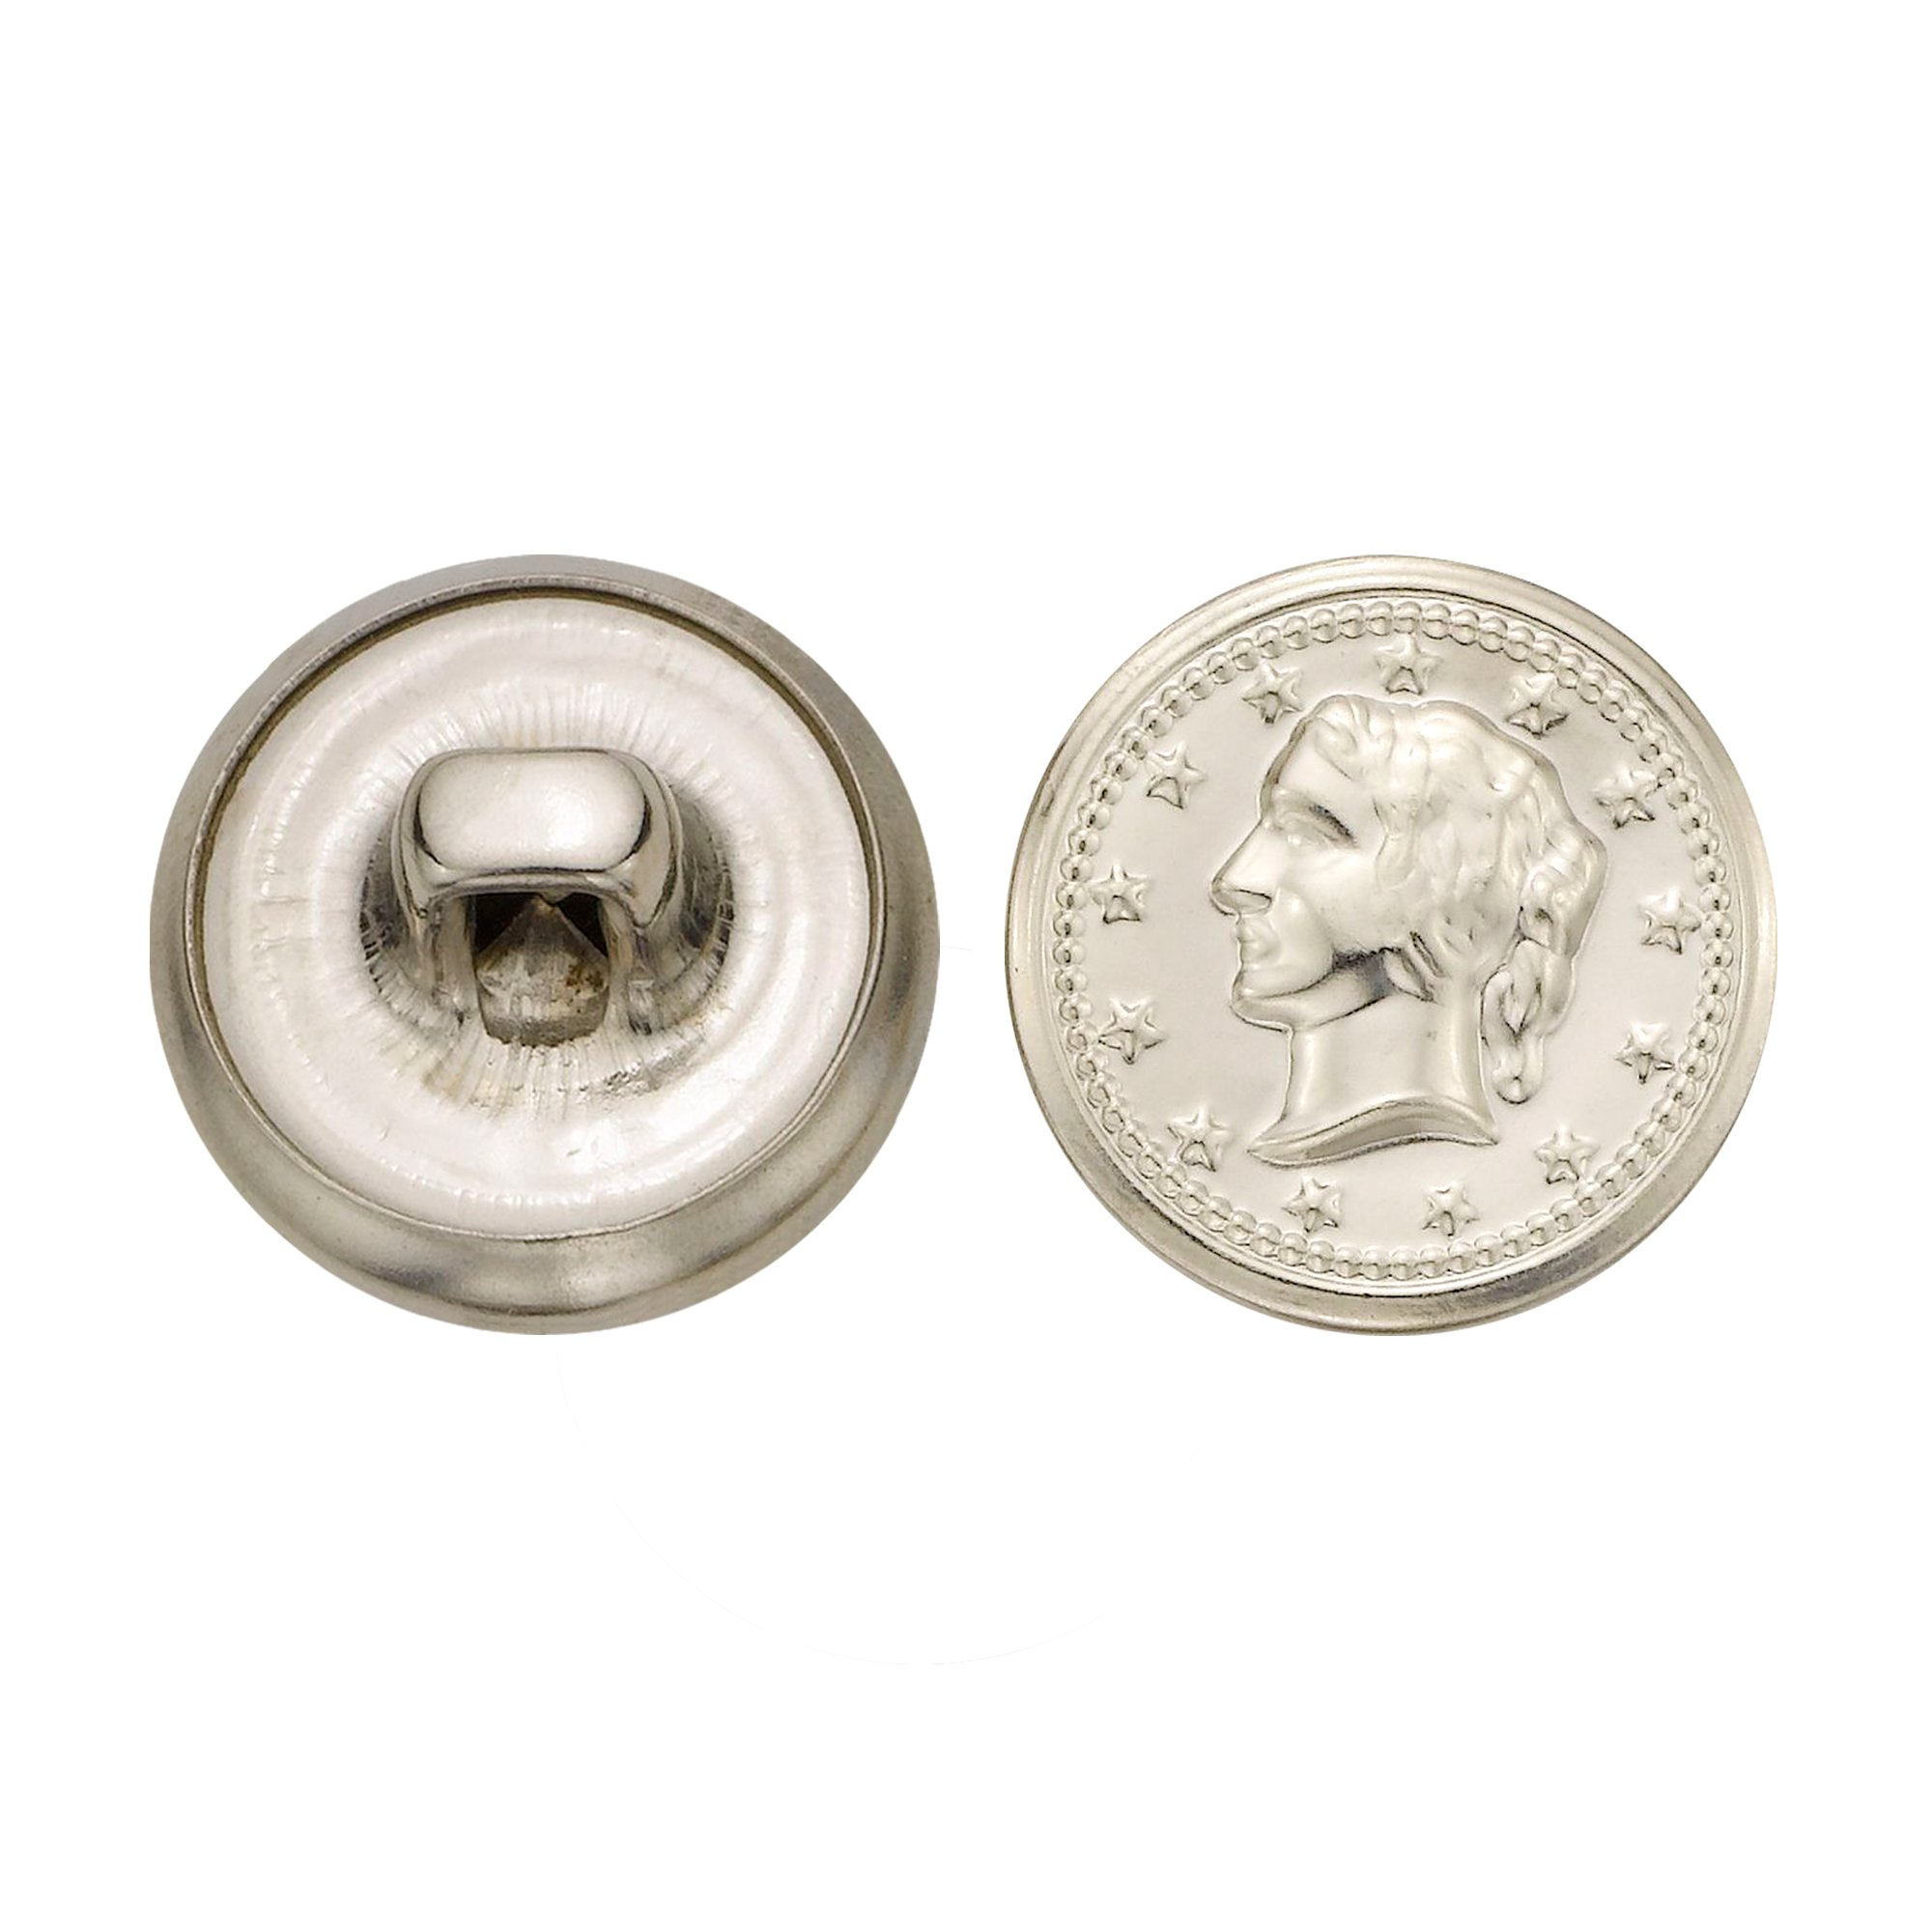 C&C Metal Products 5328 Lady Head Coin Metal Button, Size 24 Ligne, Nickel, 72-Pack